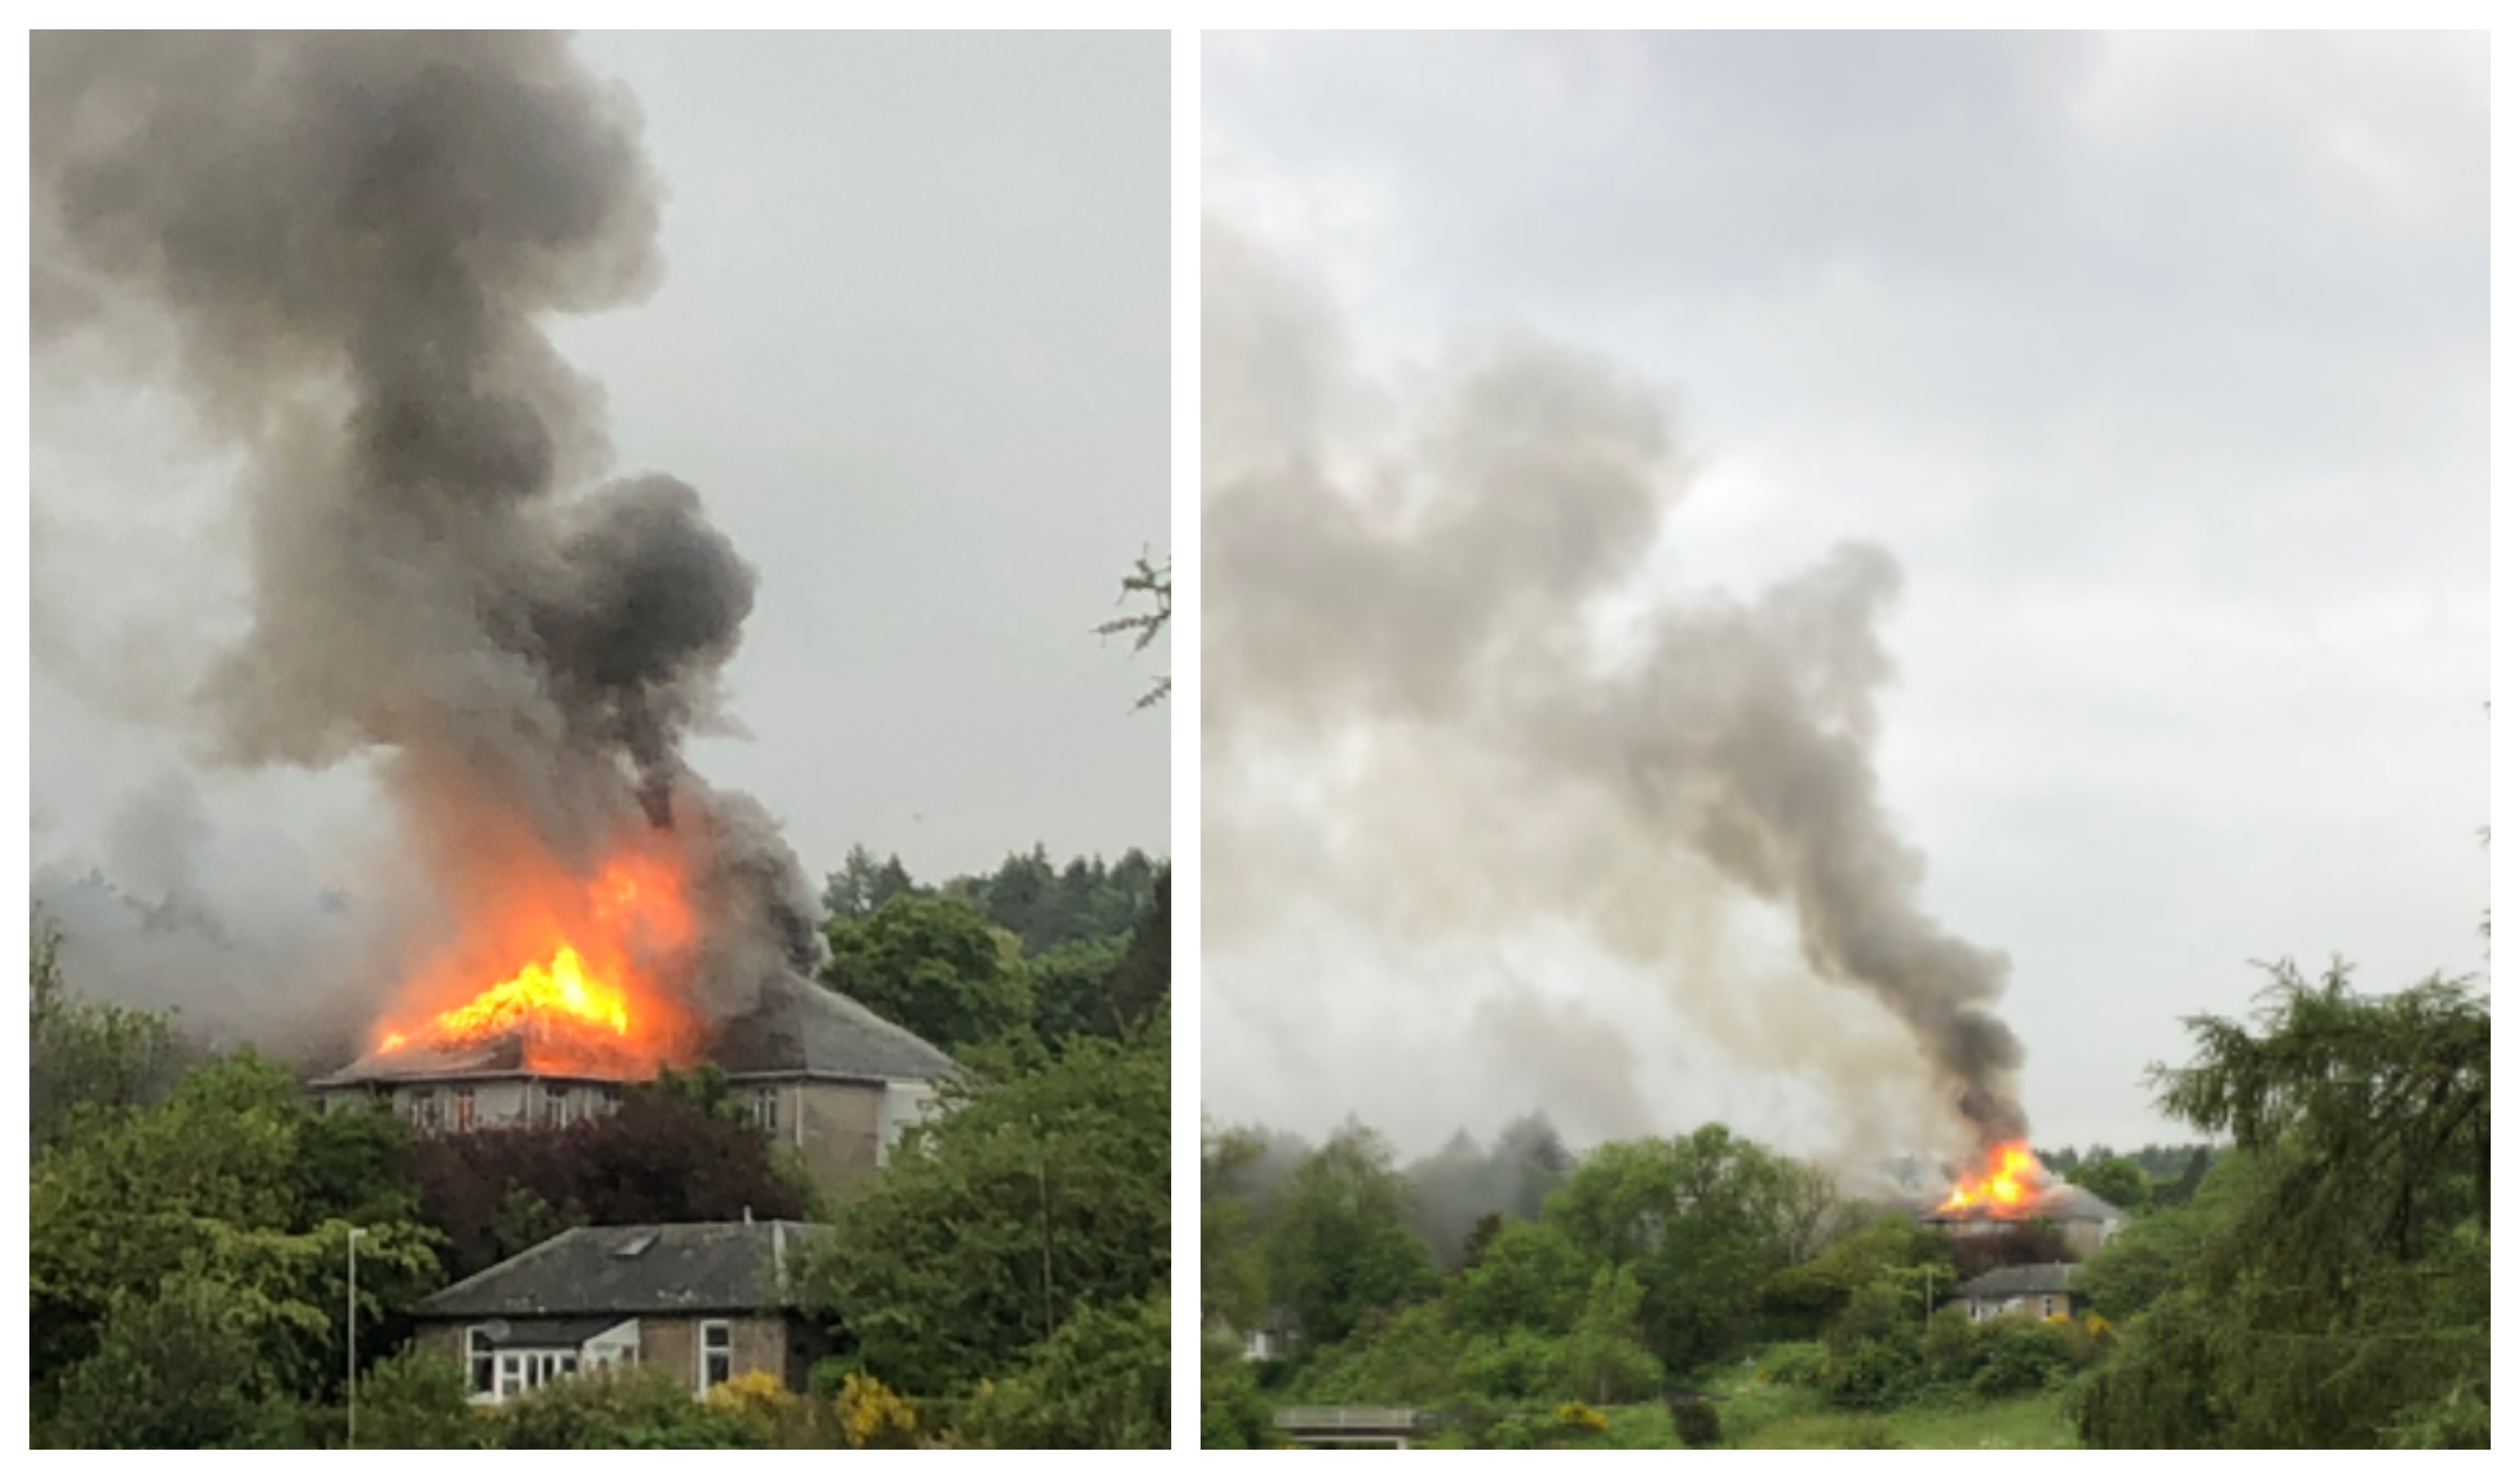 Photos show the fire burning.